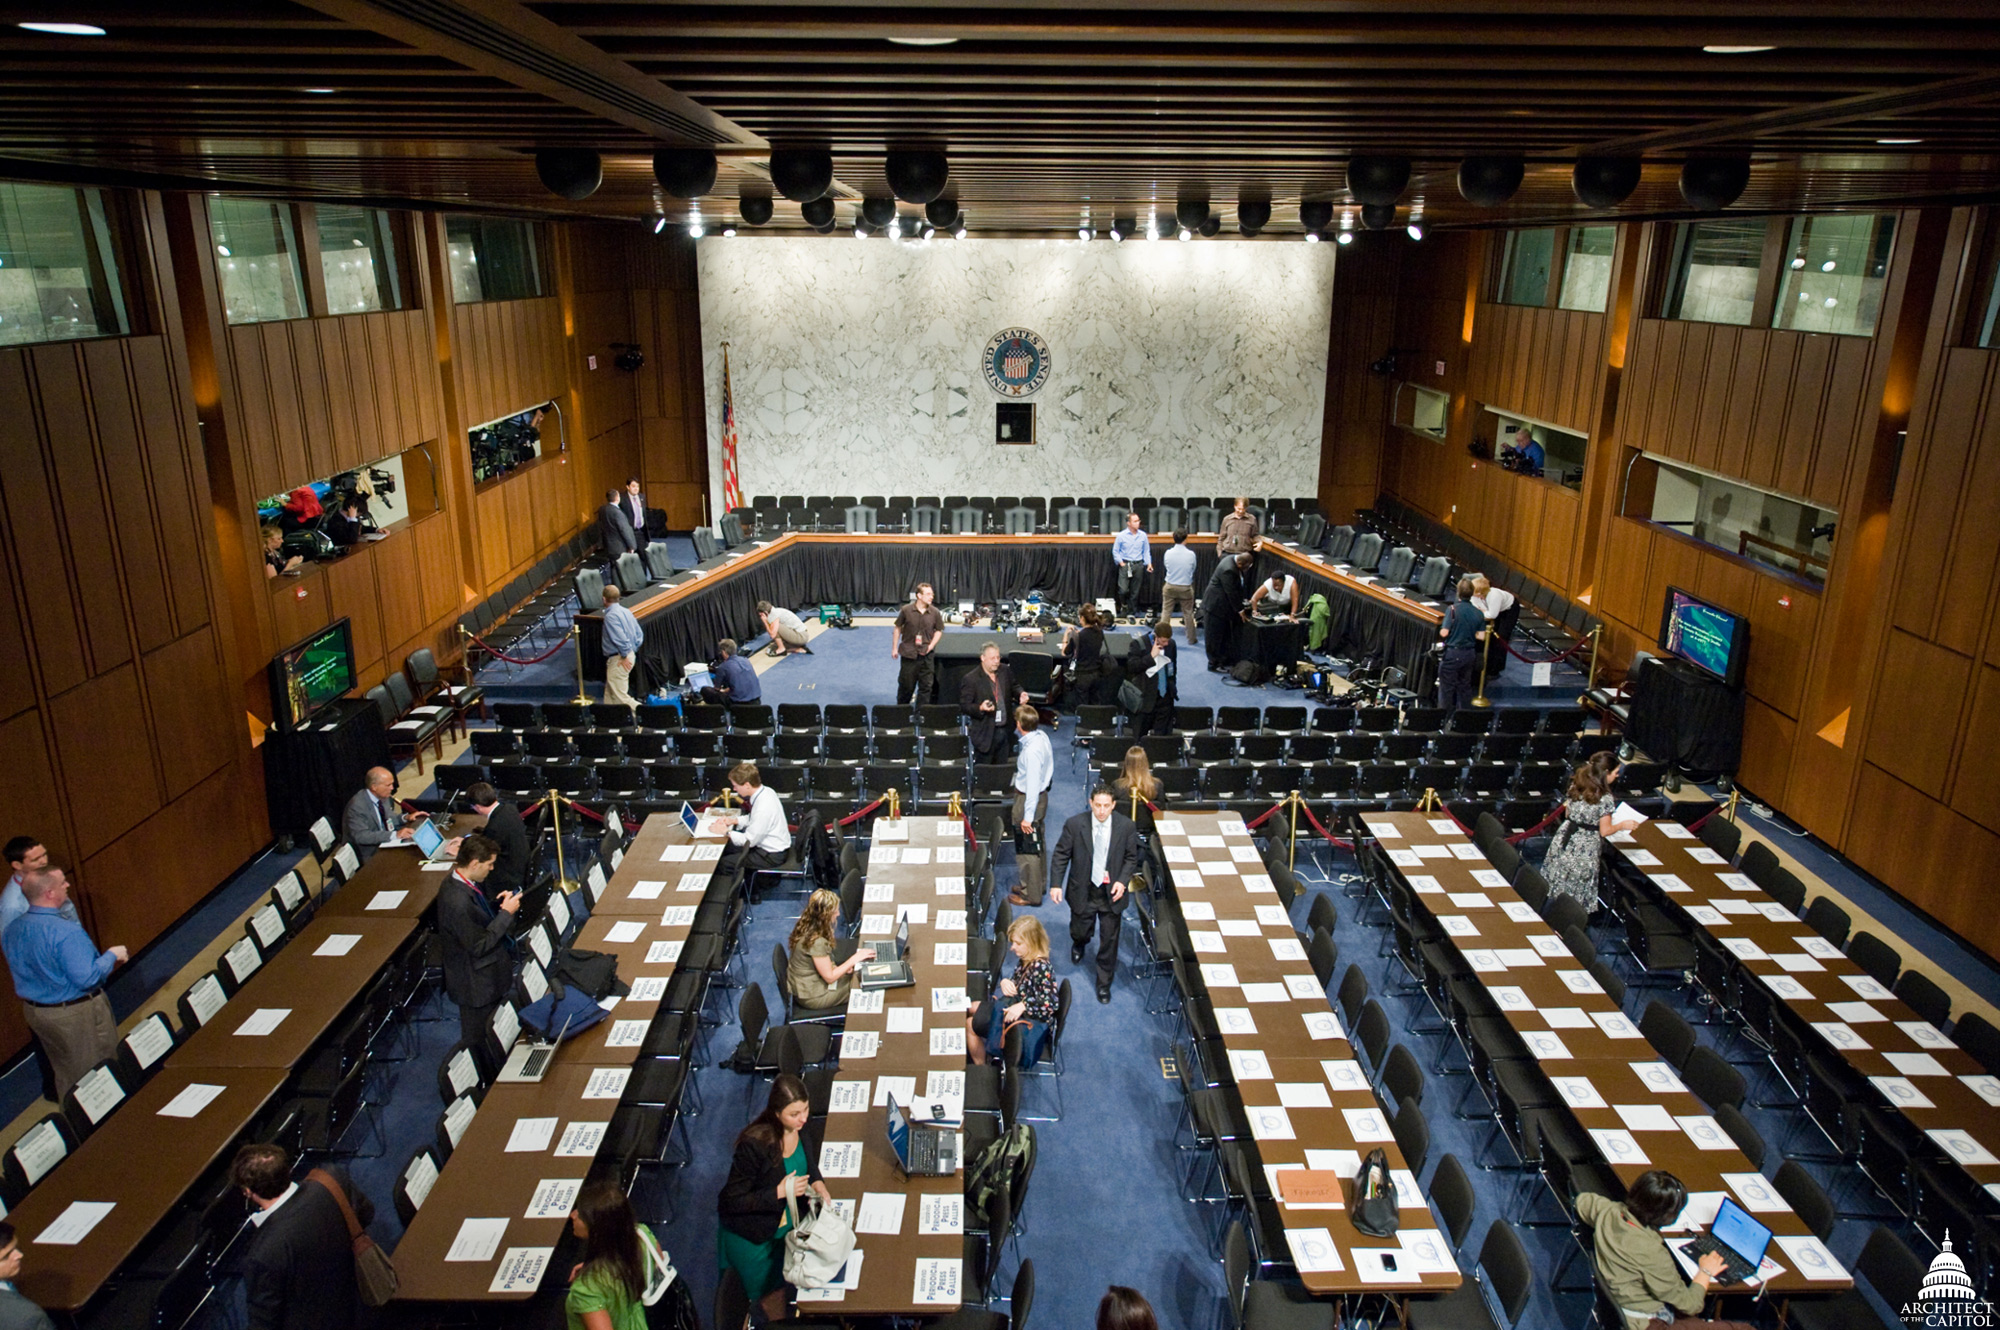 Hart Building Hearing Room